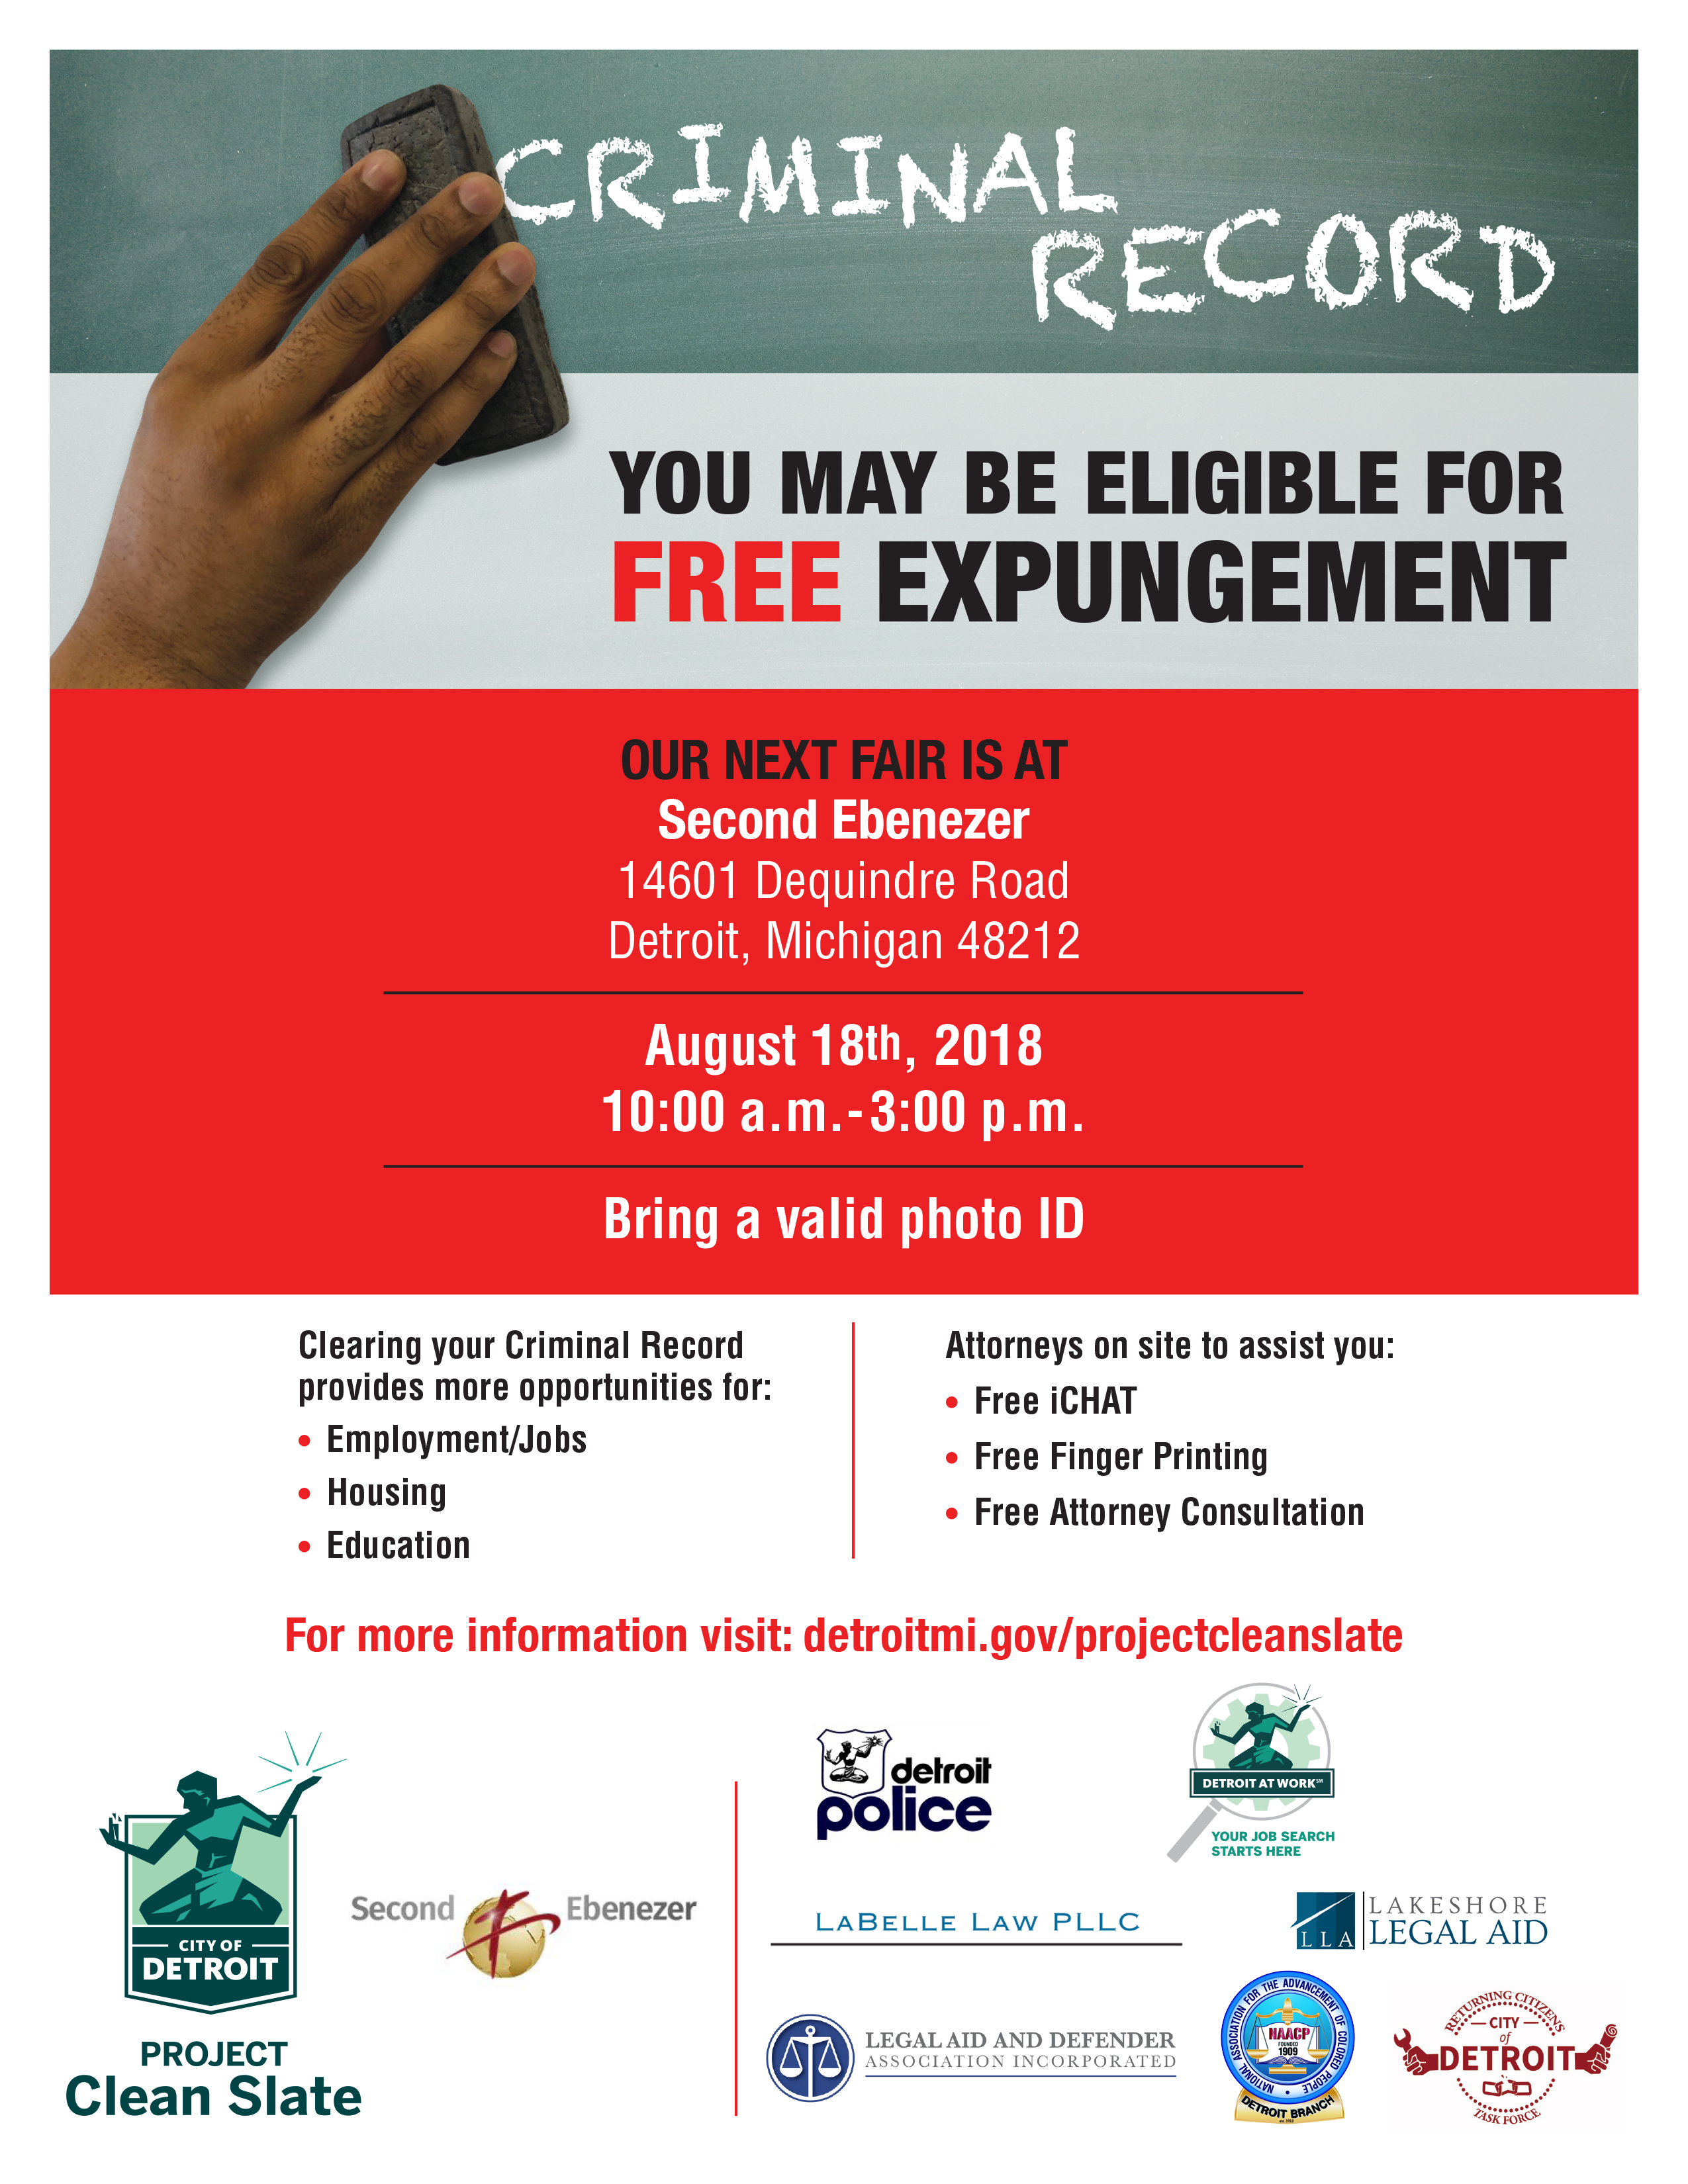 Project Clean Slate Expungement Fair